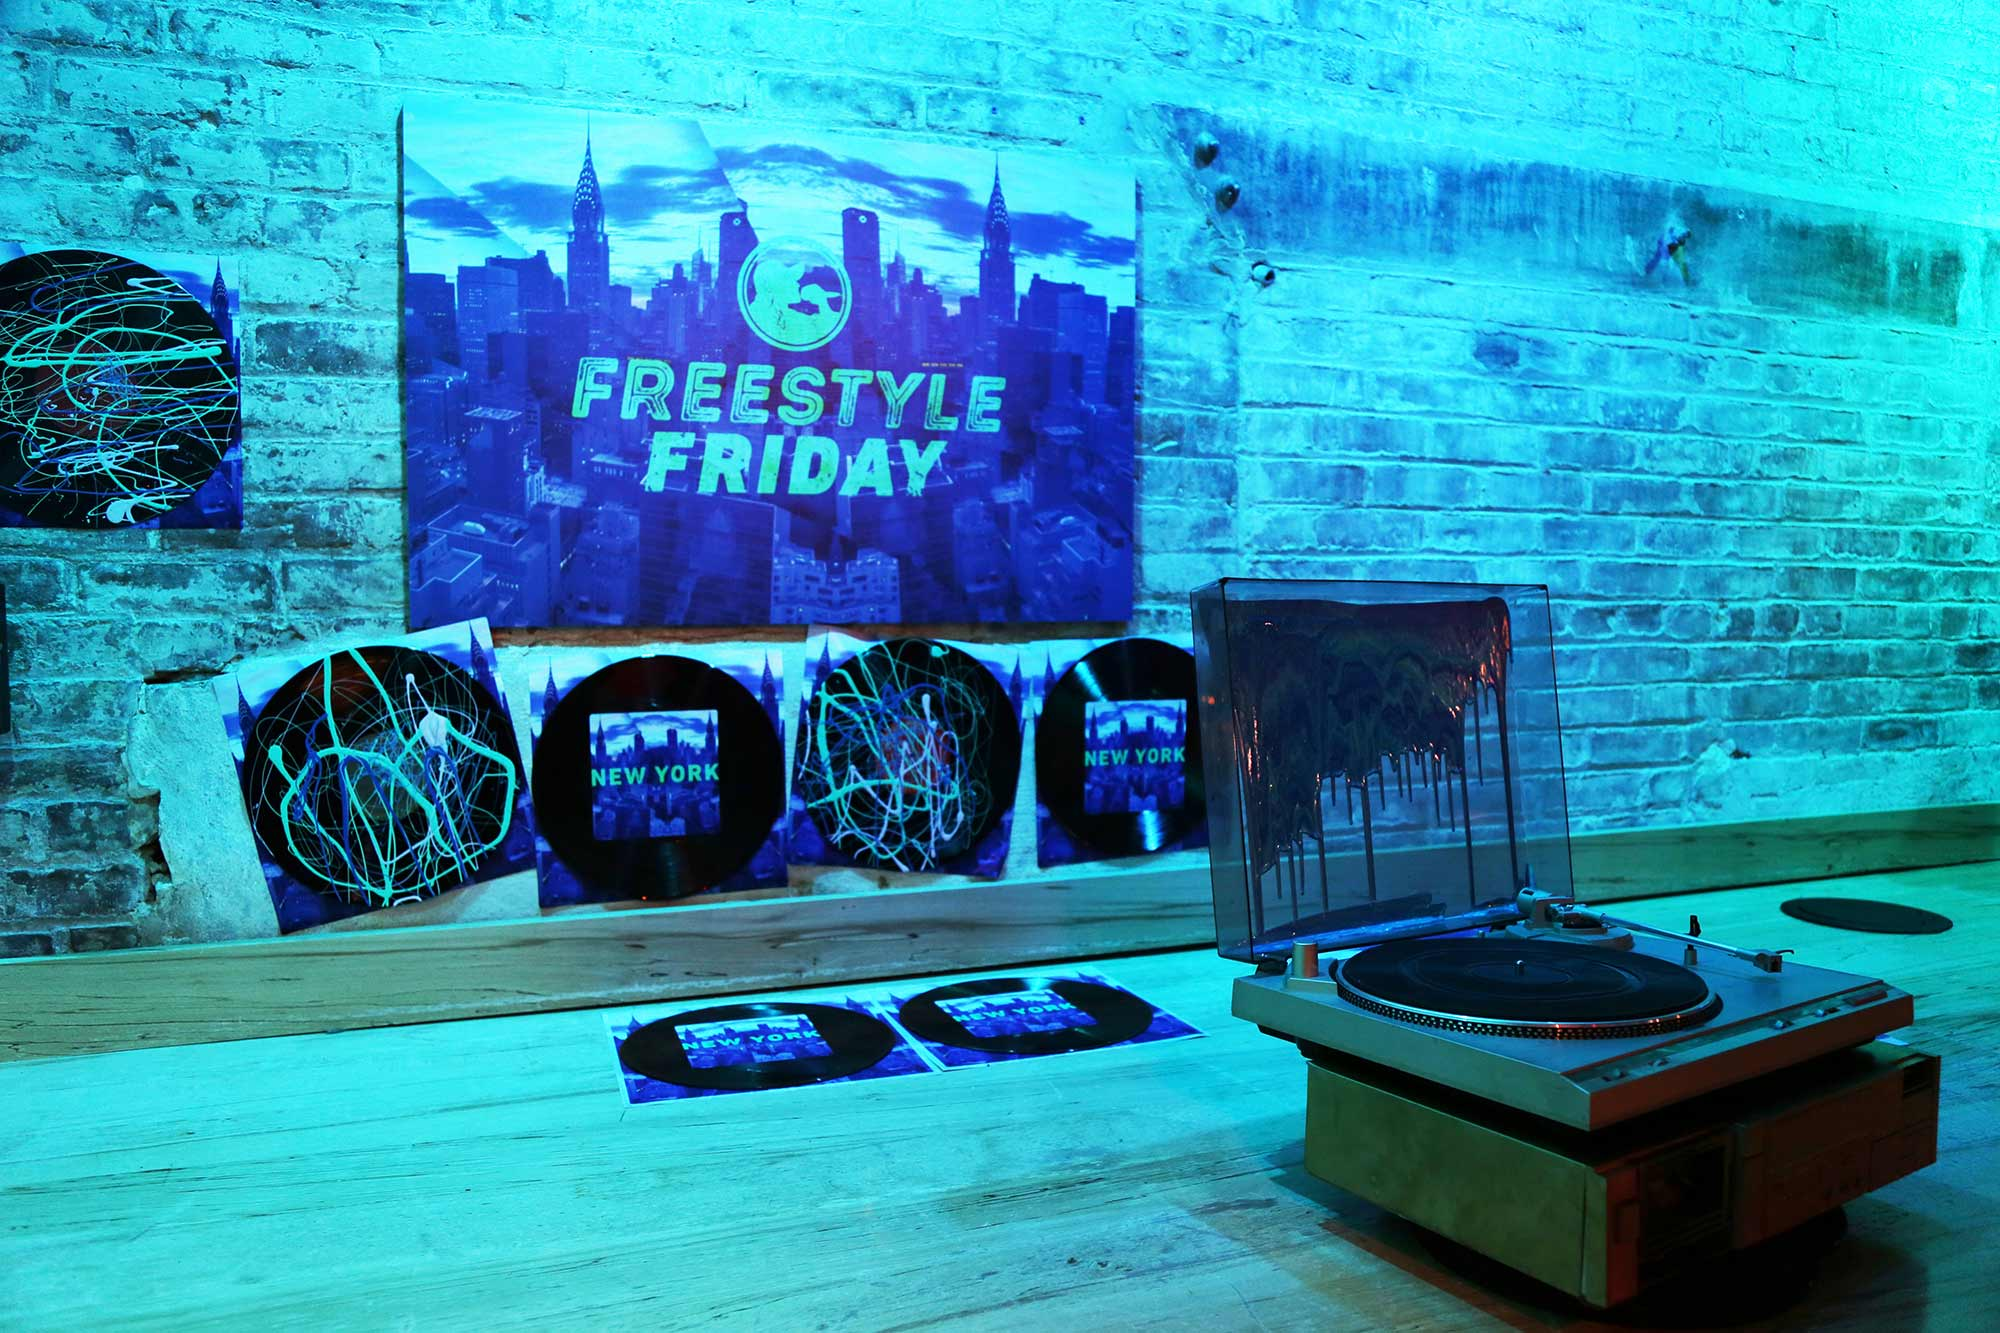 033018-FREESTYLE-FRIDAY-NYC-SELECTS-187.jpg